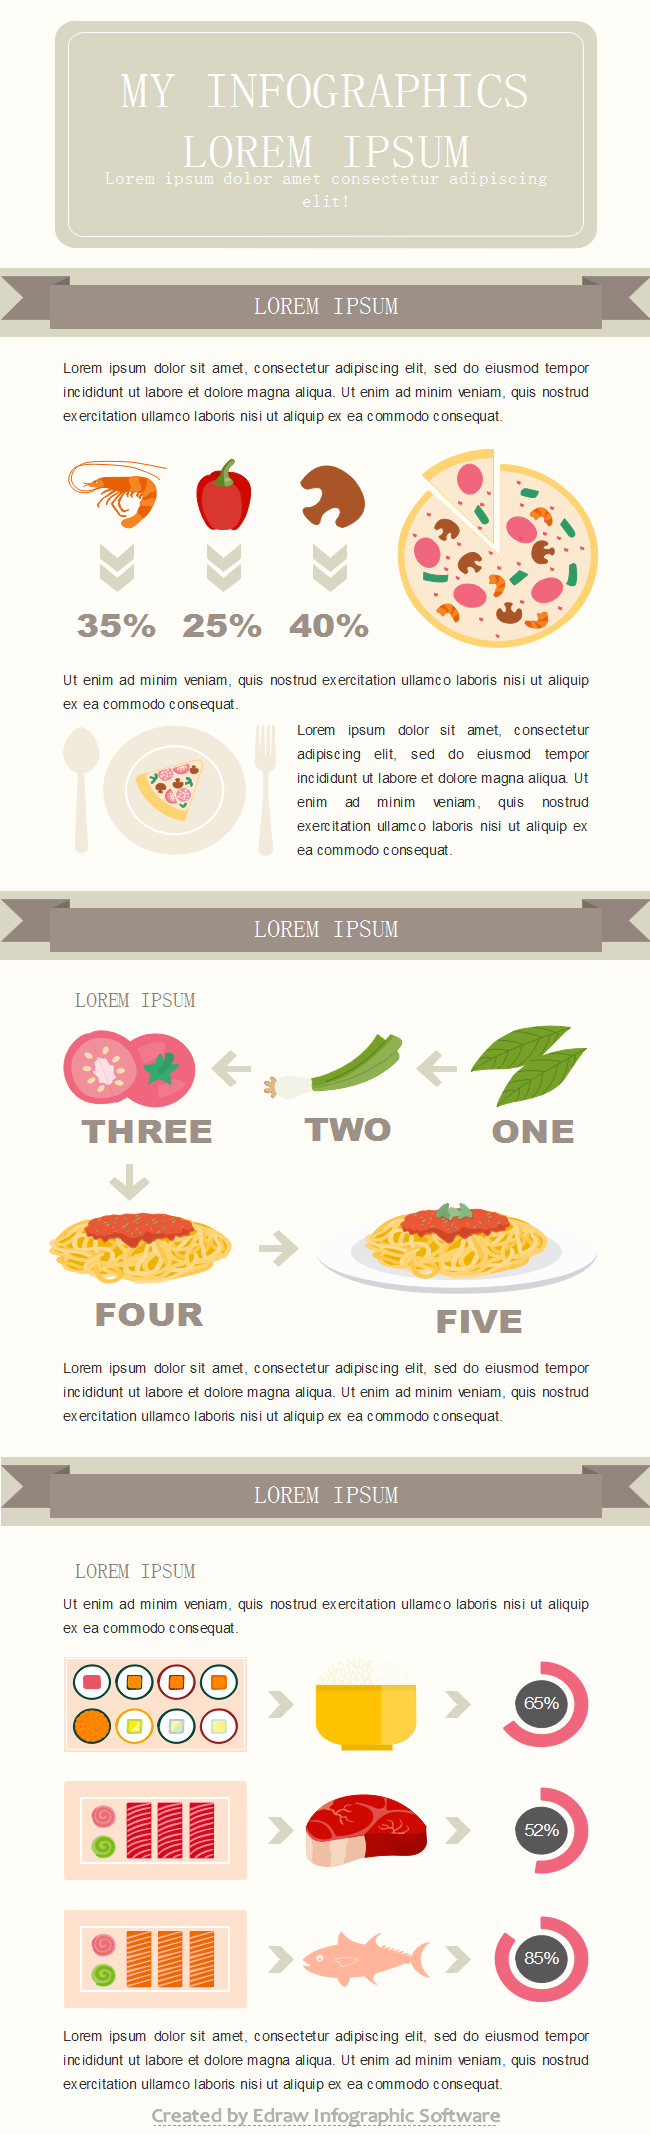 free vector food infographic templates. Black Bedroom Furniture Sets. Home Design Ideas